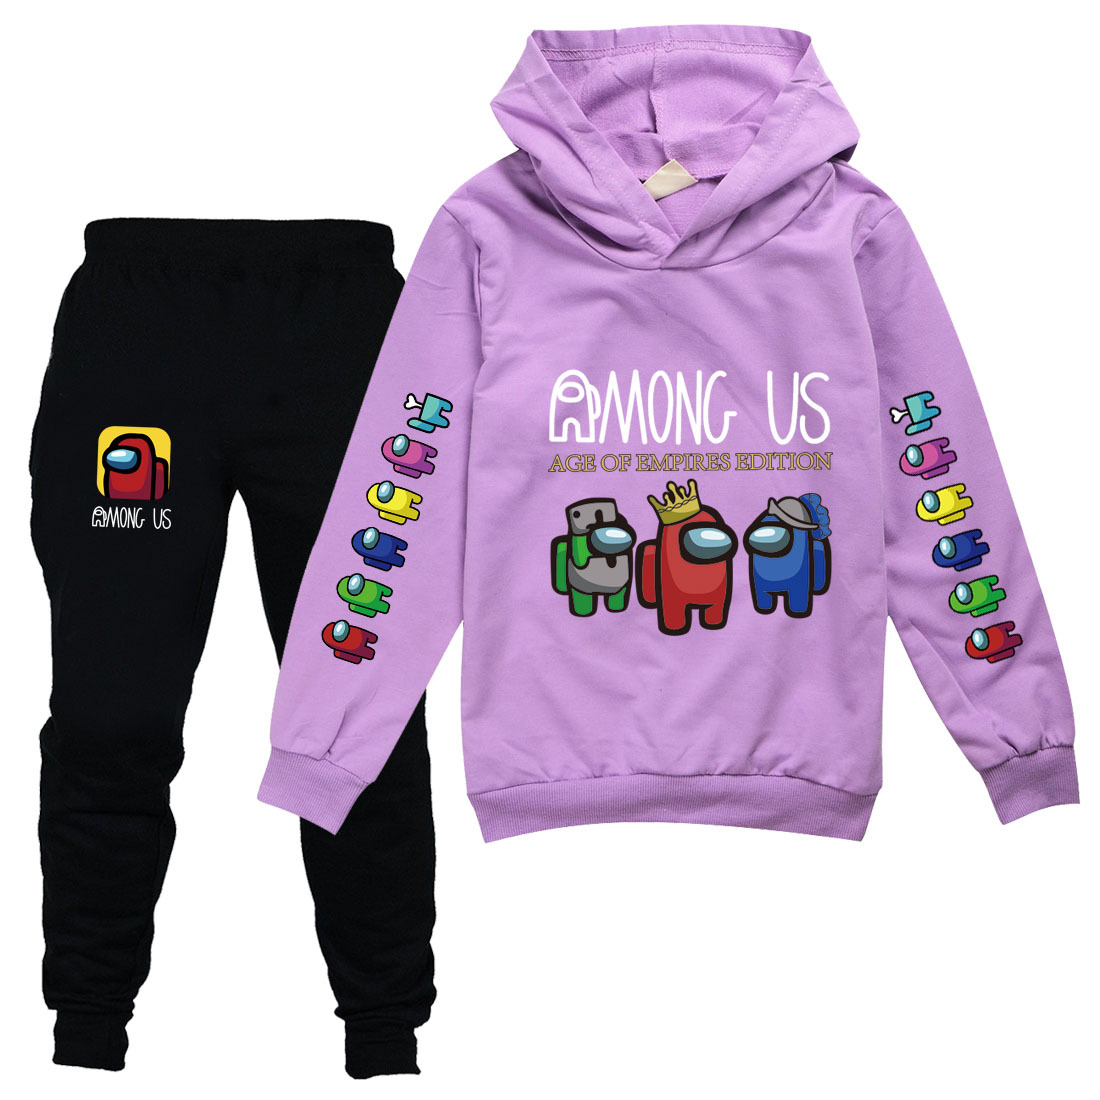 EELMOOR Among Us Sus Game Tracksuit Sets Youth Hoodie and Sweatpants Suit Outfit Fashion Sweater Set for Boys Girls